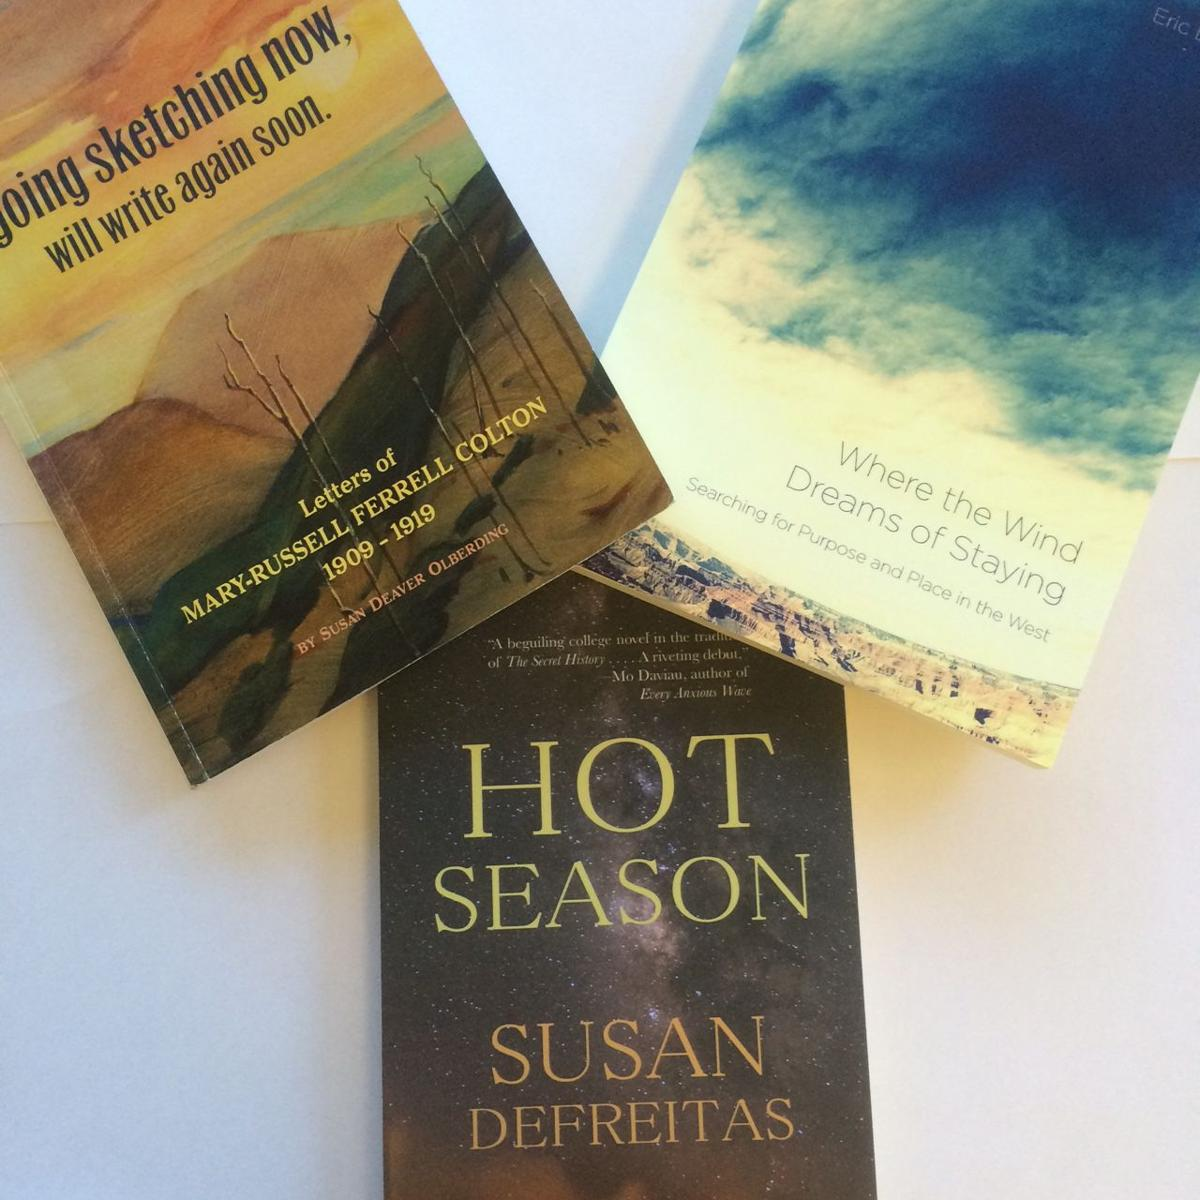 Book covers for new titles with Southwest themes.